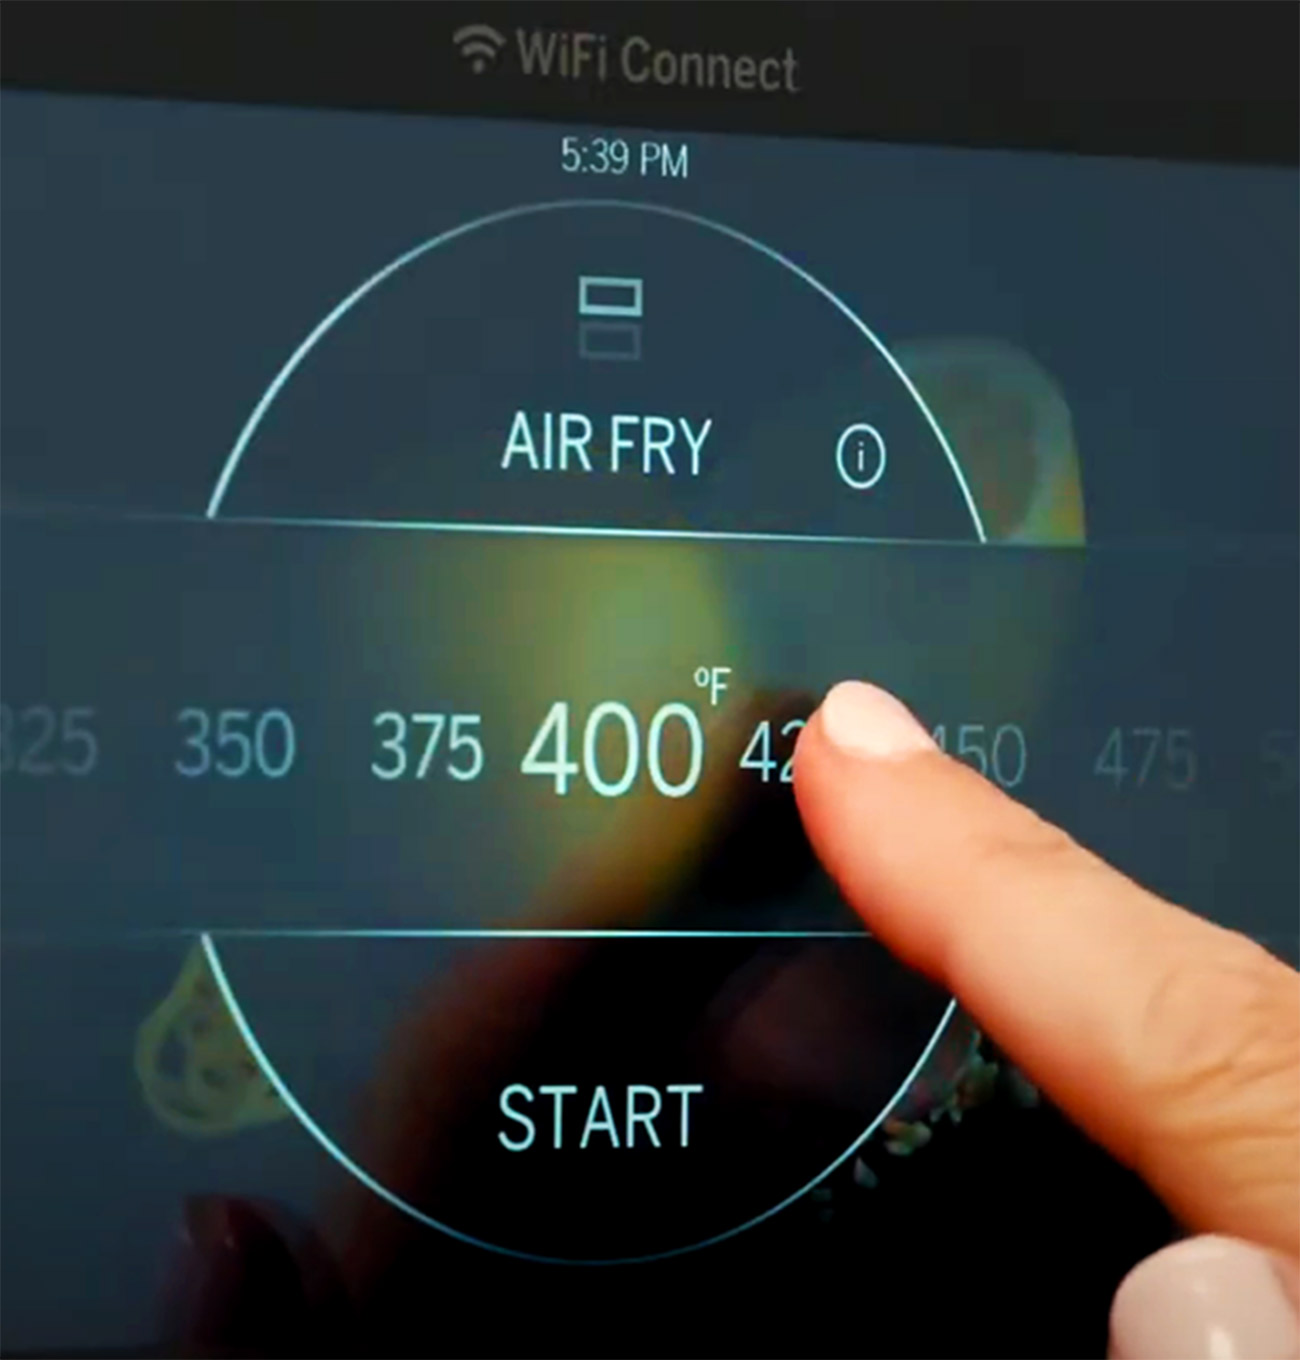 Air Fry Touch Control Panel